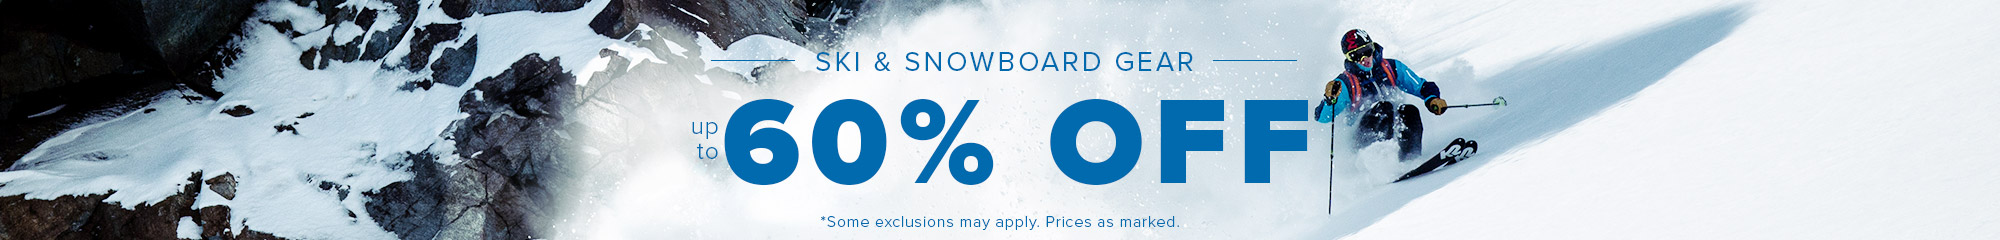 ski equipment 20% off